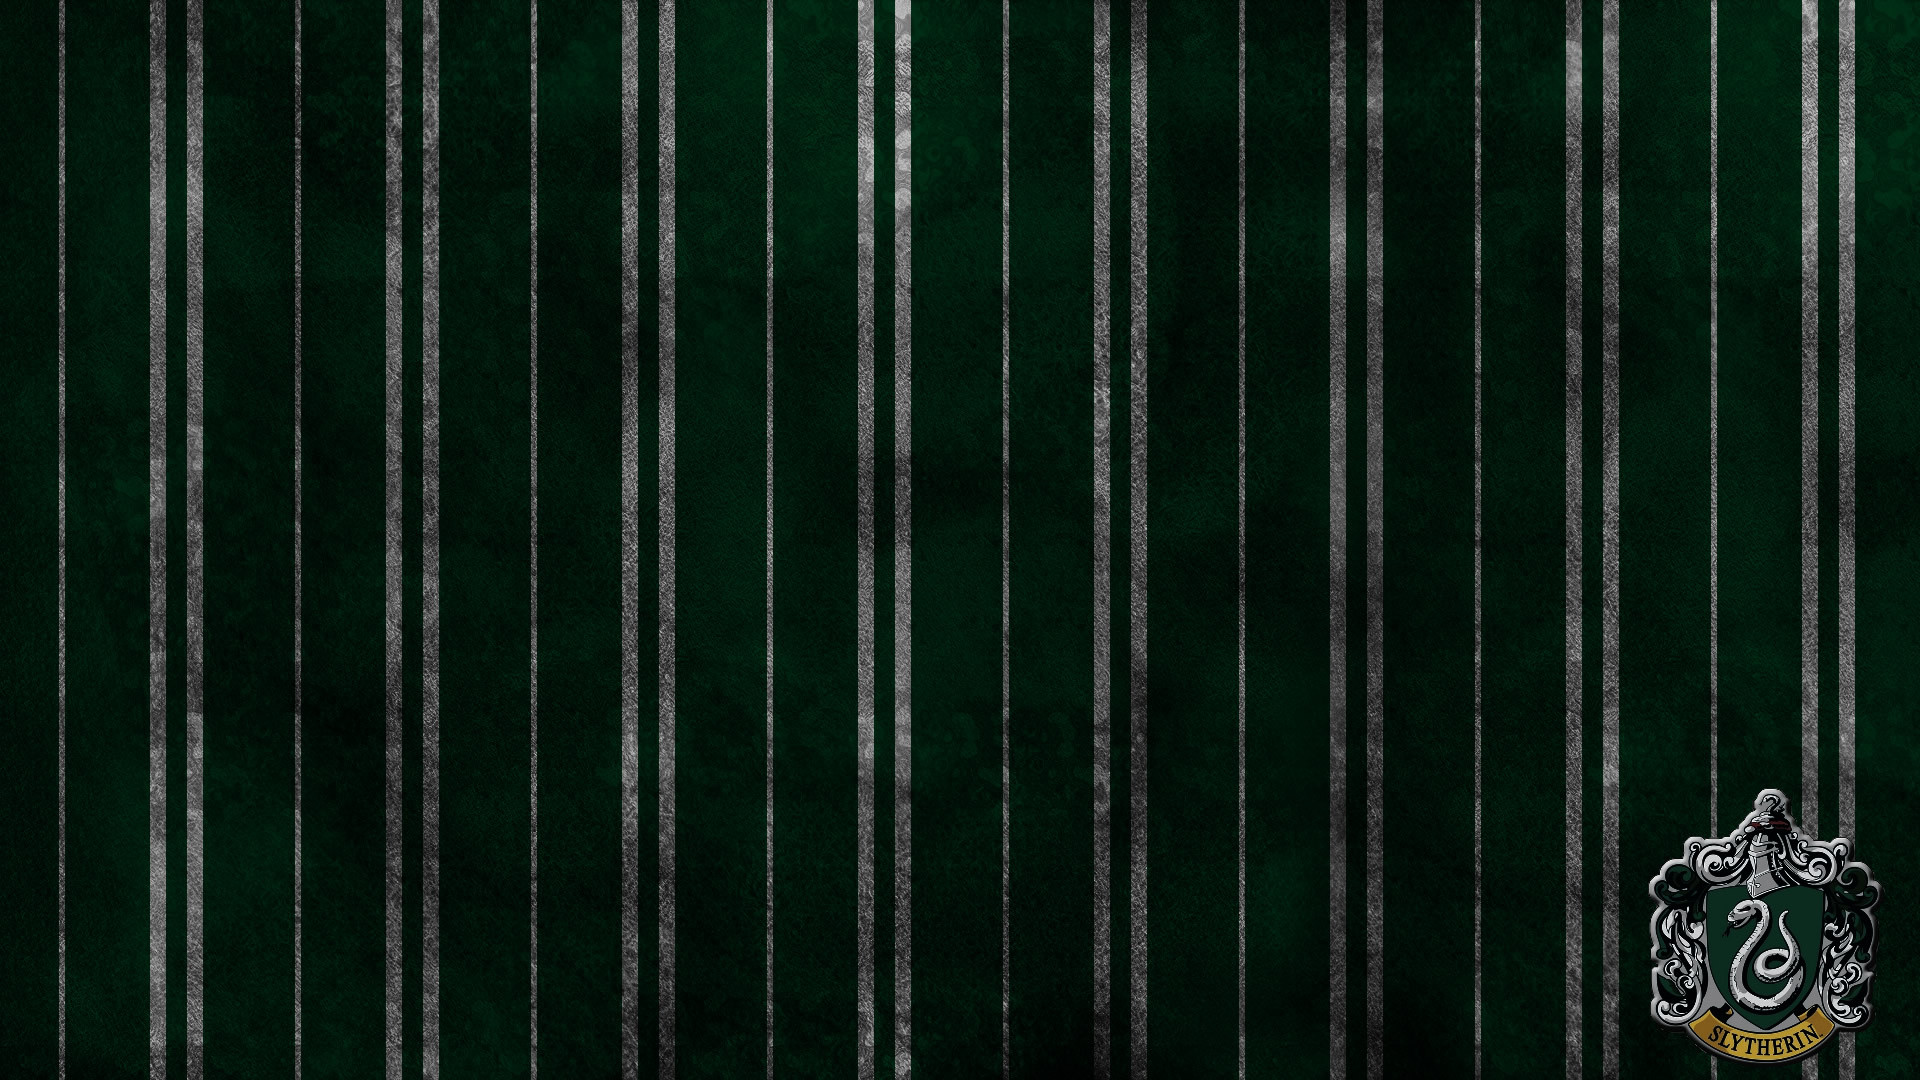 Slytherin Wallpapers Hd Stay Staywallpaper   Data Src - Slytherin Wallpaper For Pc - HD Wallpaper